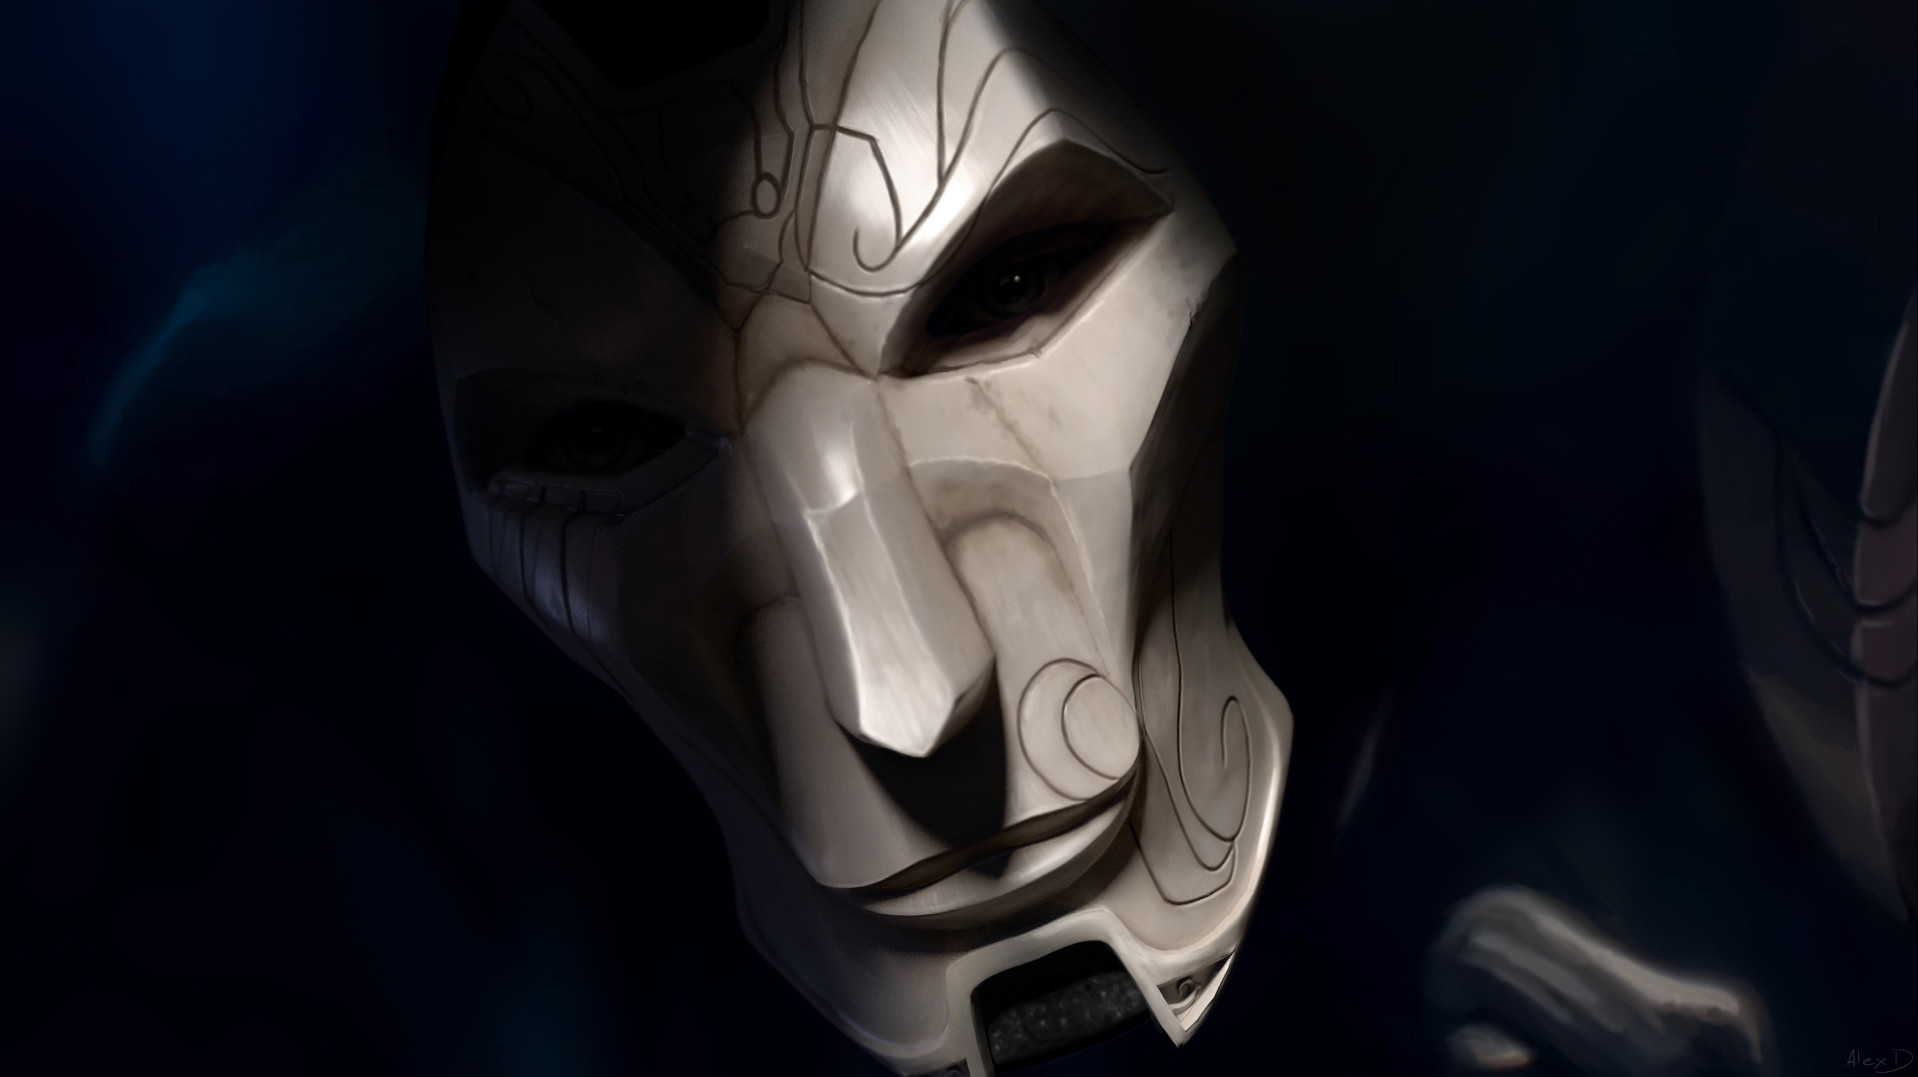 jhin the virtuoso